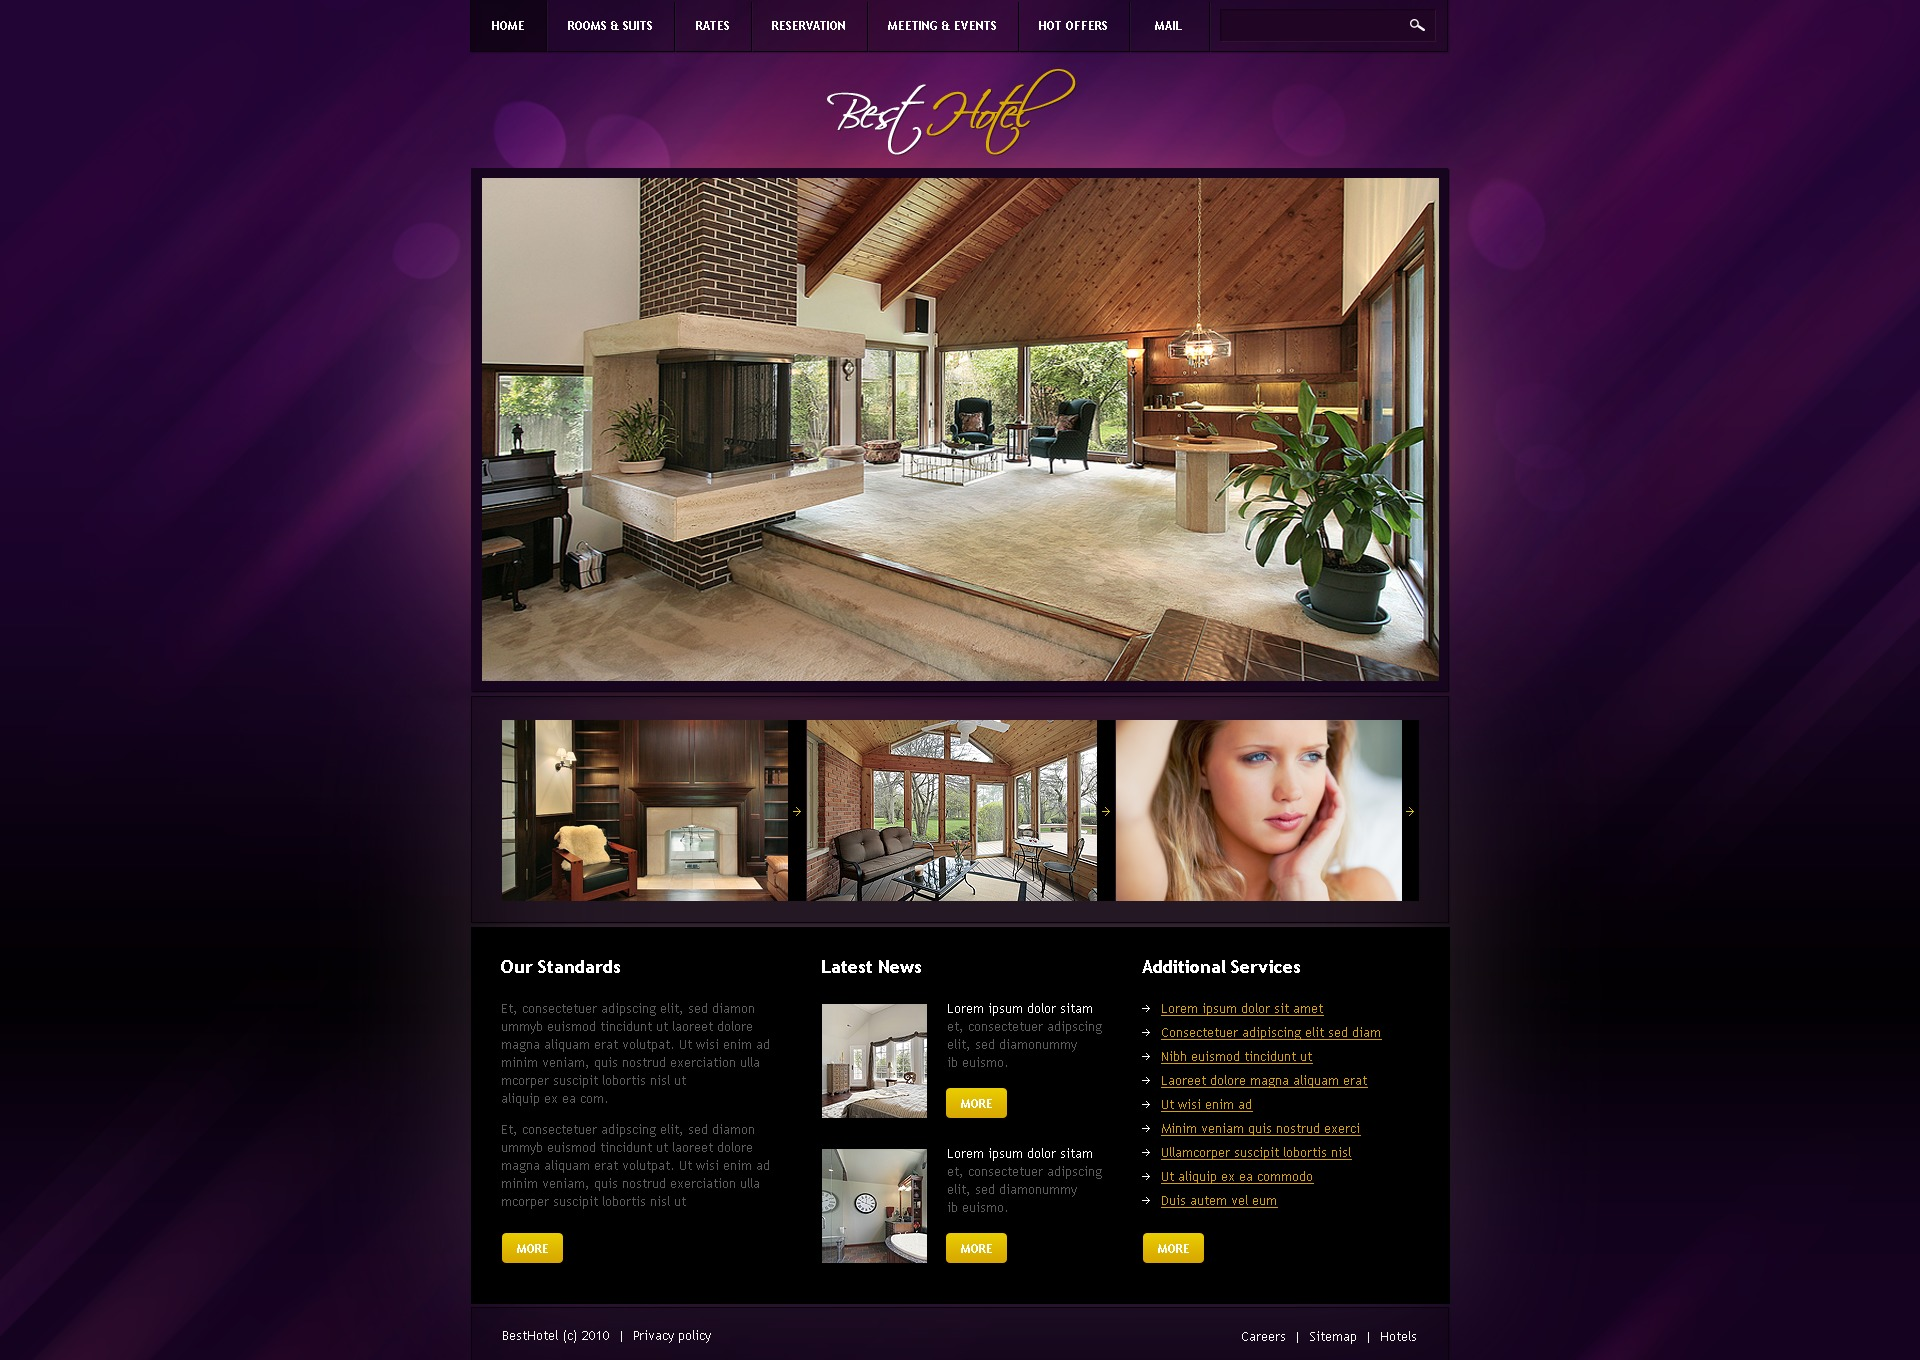 The Best Hotel PSD Design 54136, one of the best PSD templates of its kind (hotels, wide, jquery), also known as best hotel PSD template, royal motel PSD template, PSD template PSD template, exotic PSD template, building PSD template, events PSD template, interior PSD template, cozy PSD template, comfortable room PSD template, spacious PSD template, light PSD template, modern rest PSD template, pool PSD template, floor PSD template, stairs PSD template, staff PSD template, reception PSD template, testimonial PSD template, service PSD template, offer PSD template, booking PSD template, reservation PSD template, order PSD template, location PSD template, security PSD template, wedding PSD template, cerem and related with best hotel, royal motel, PSD template, exotic, building, events, interior, cozy, comfortable room, spacious, light, modern rest, pool, floor, stairs, staff, reception, testimonial, service, offer, booking, reservation, order, location, security, wedding, cerem, etc.